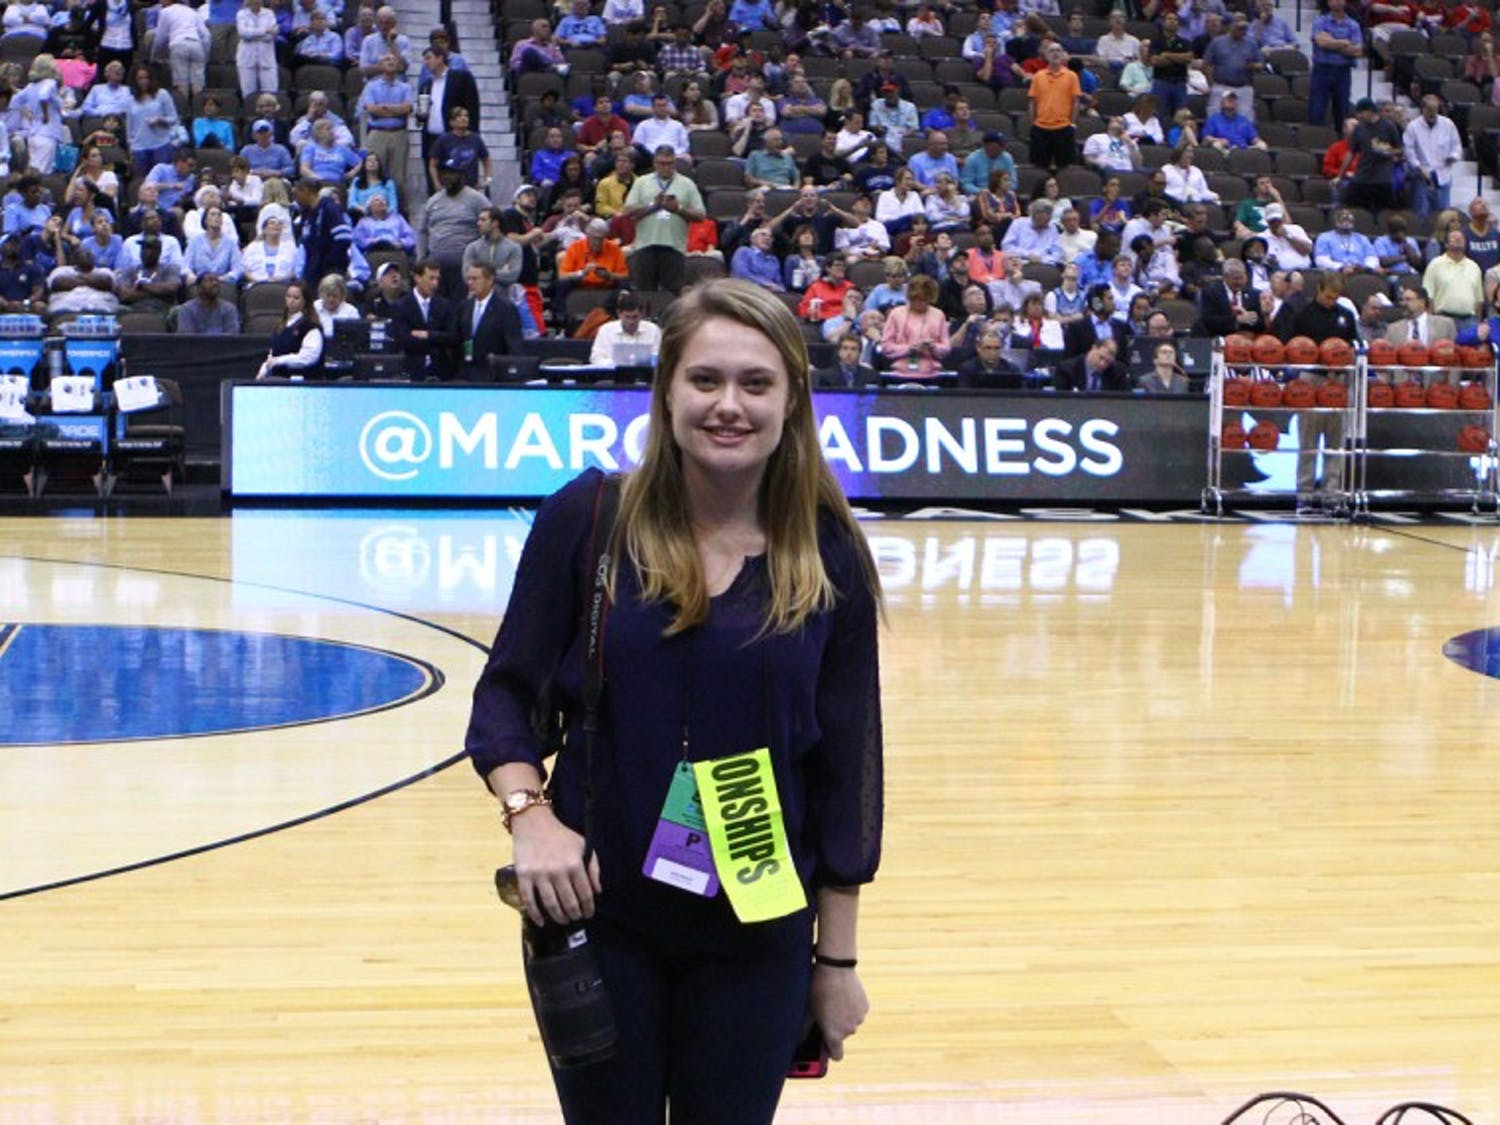 The Daily Tar Heel senior photographer Halle Sinnott stands on the court during half time of Thursday's game.